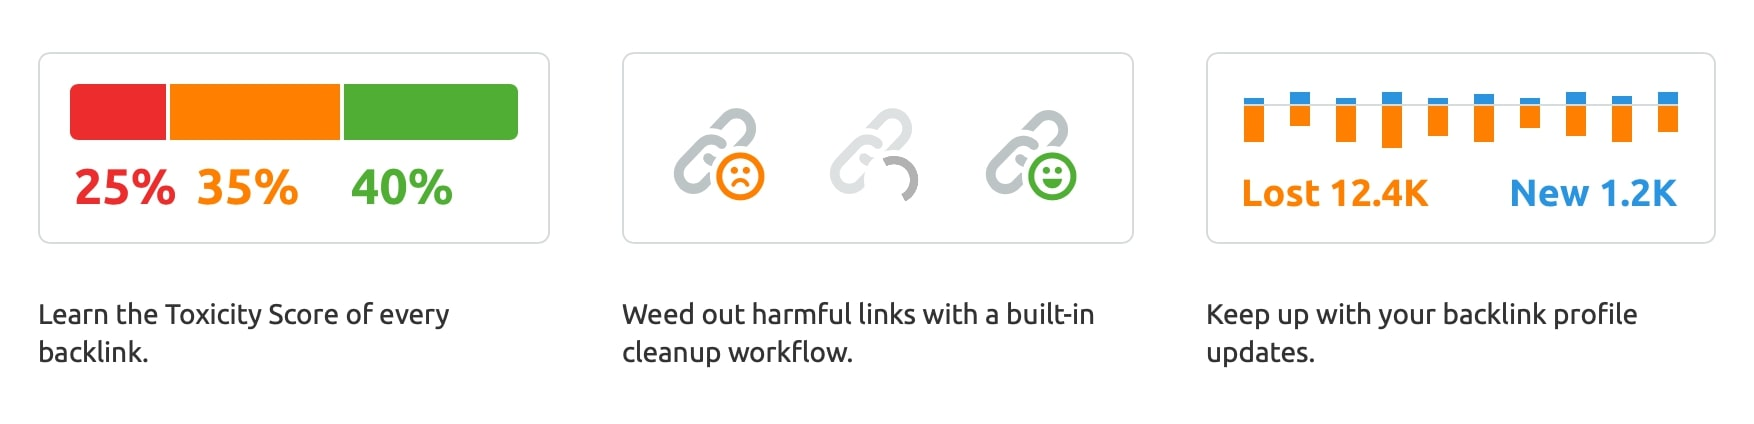 Backlink Audit tool in SEMrush to find Link Toxicity score